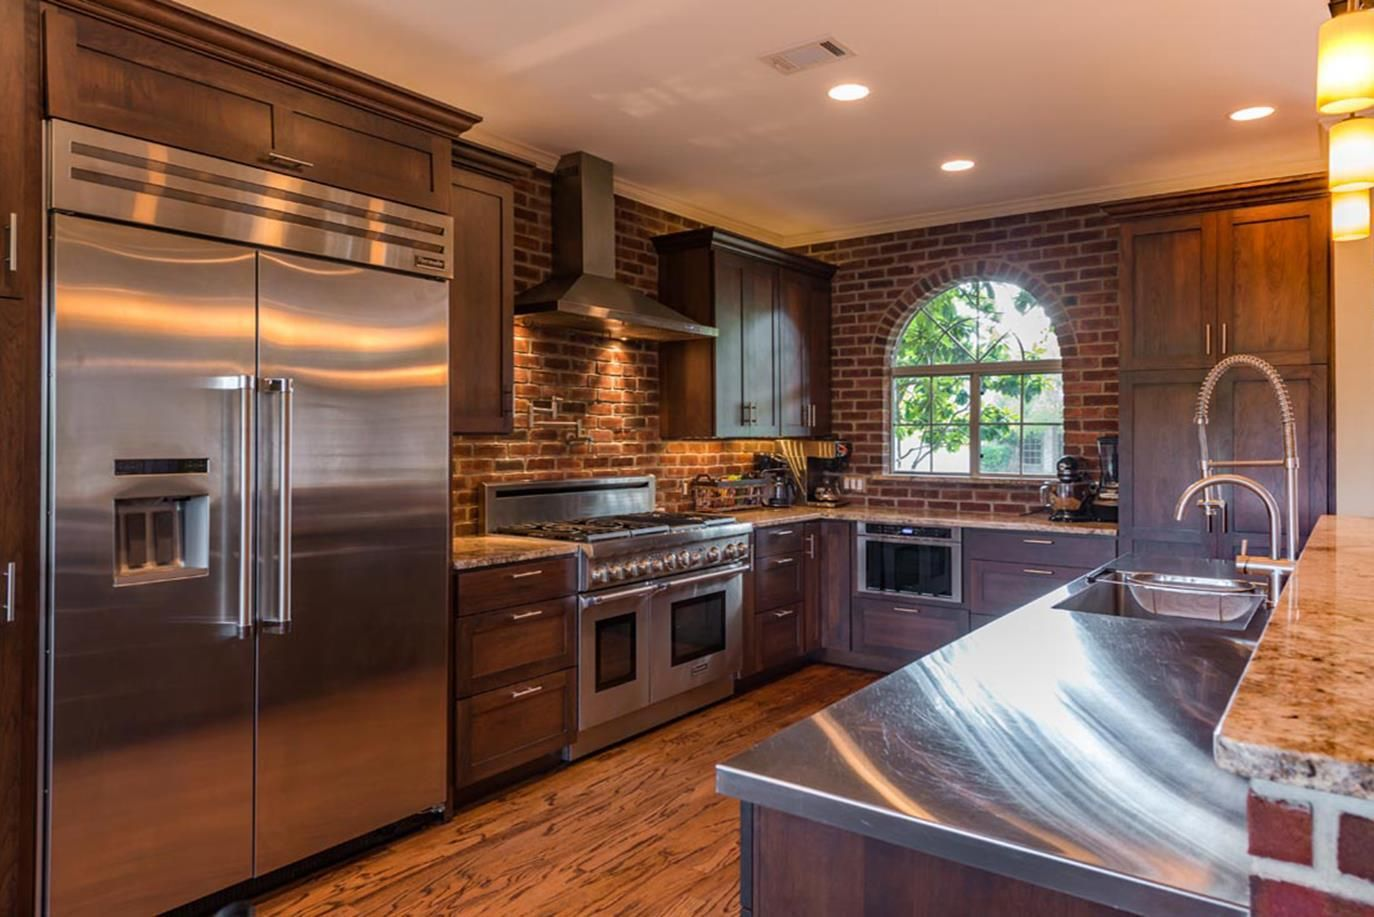 New Orleans Style Kitchen Decorating Ideas 27 Kitchen Styling